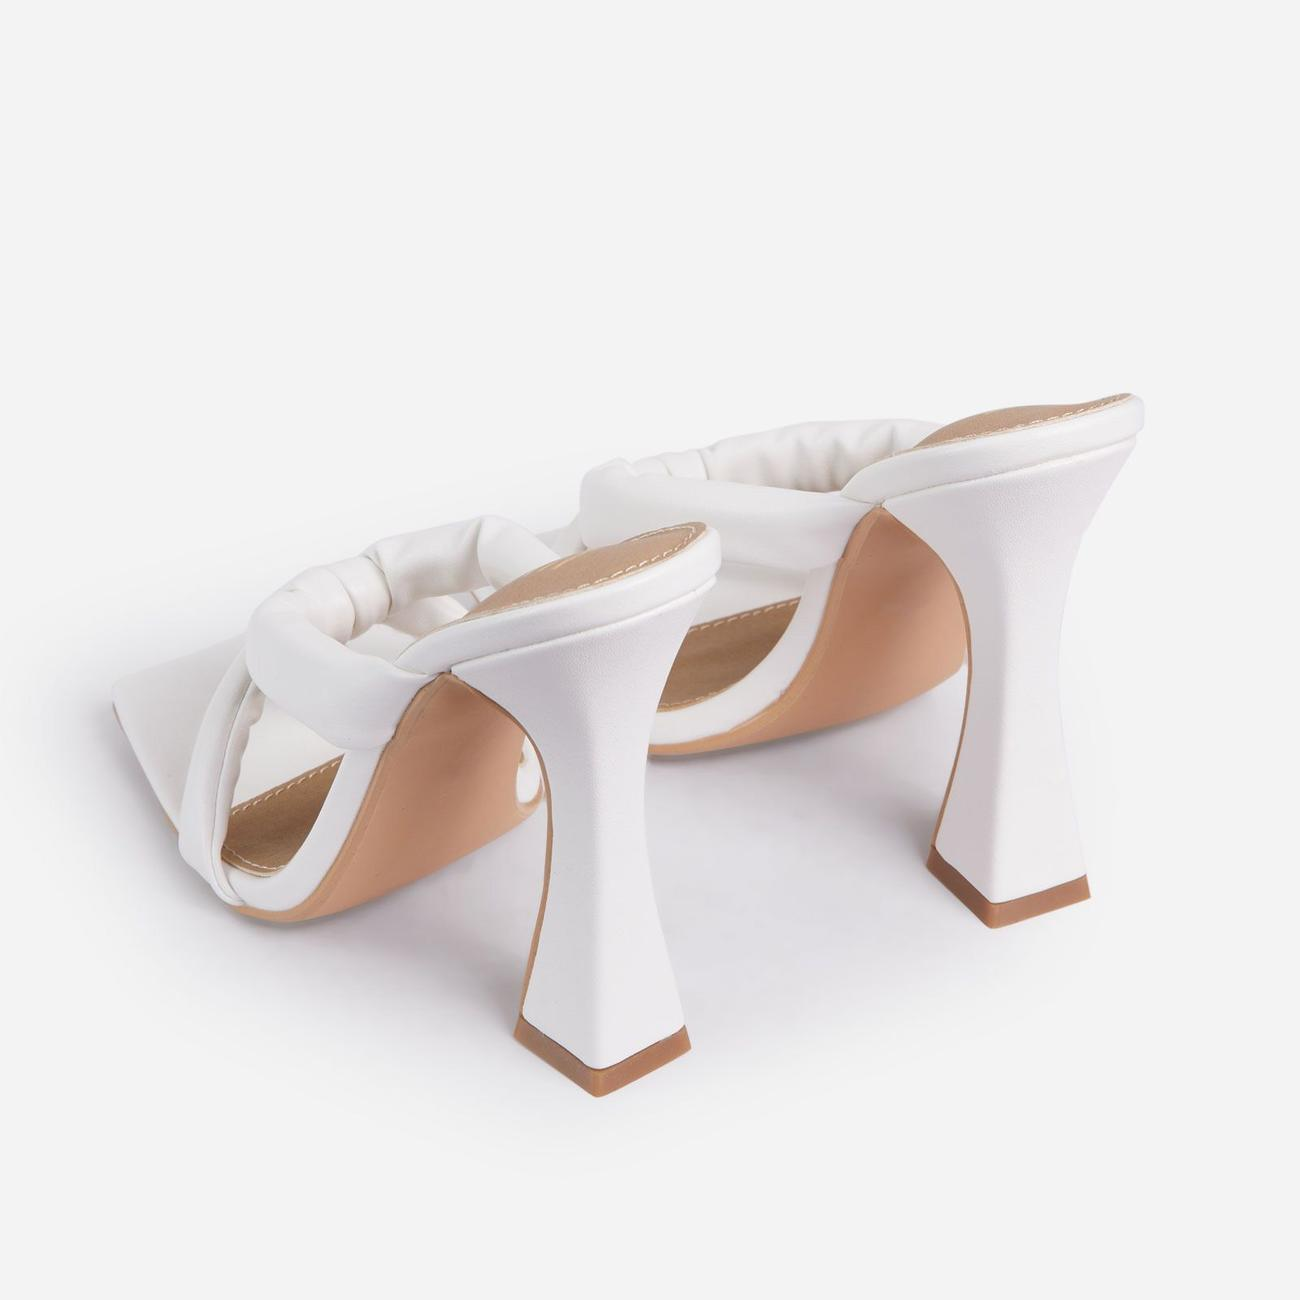 Loyal Padded Cross Strap Square Toe Heel Mule In White Faux Leather Image 5